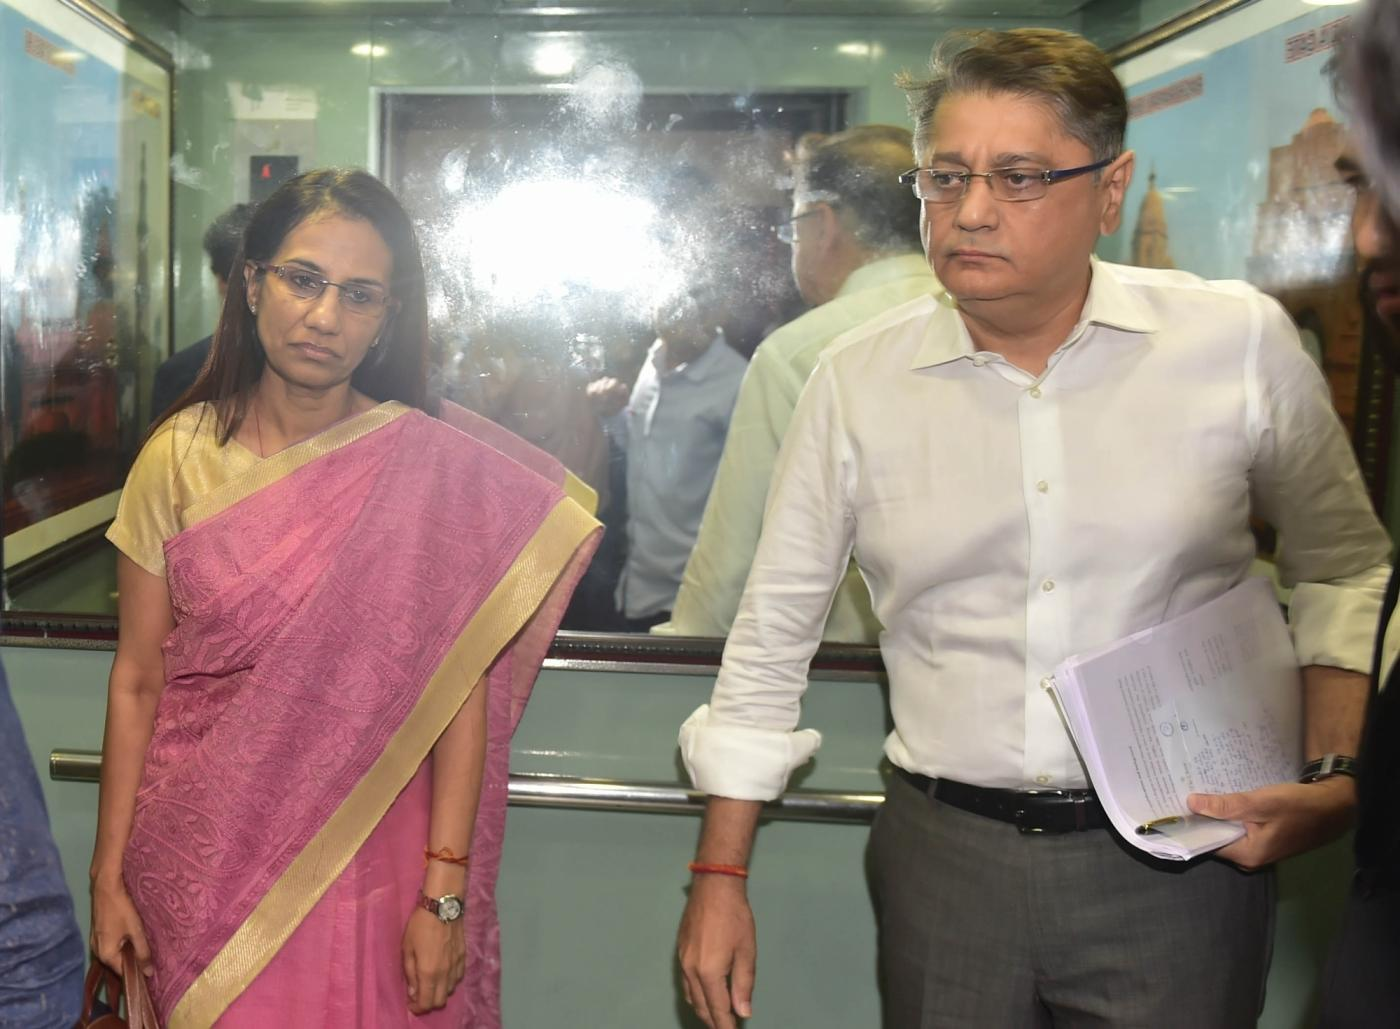 New Delhi: Former ICICI Bank chief Chanda Kochhar and her husband Deepak Kochhar arrive to appear before the Enforcement Directorate (ED) in connection with the Rs 1,875-crore Videocon loan case in New Delhi on May 13, 2019. (Photo: IANS) by .